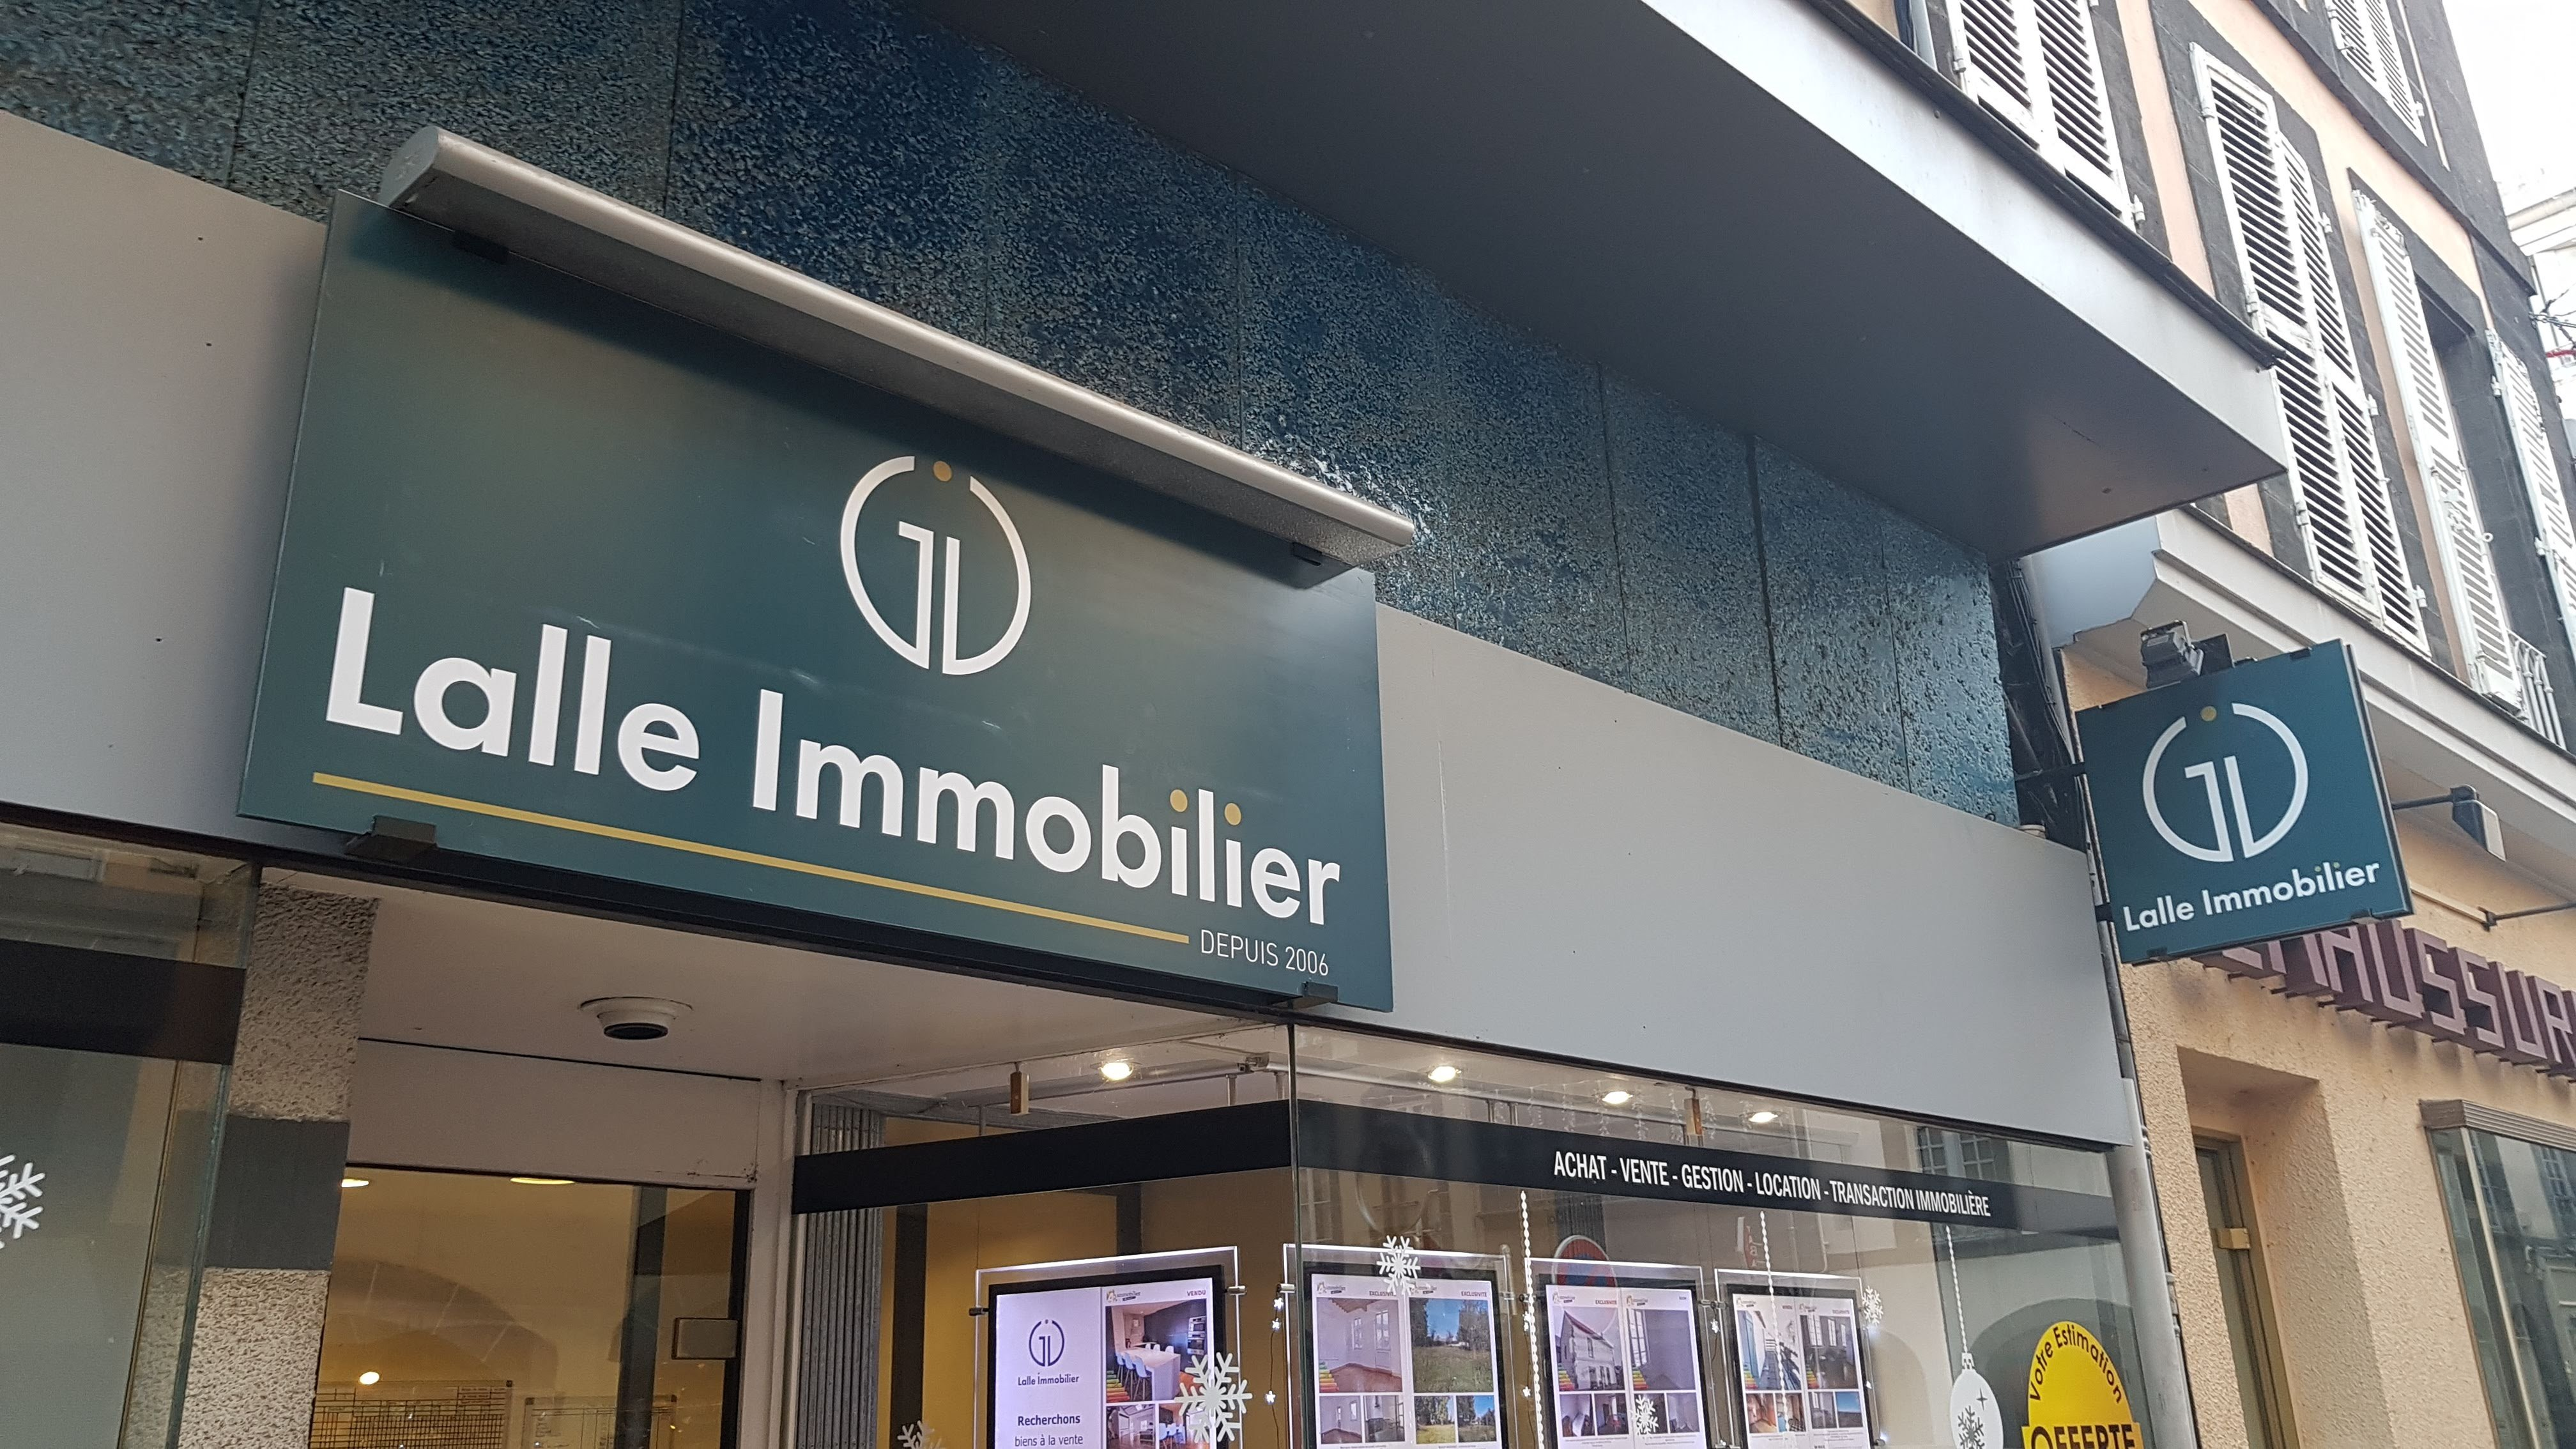 Lalle Immobilier Riom